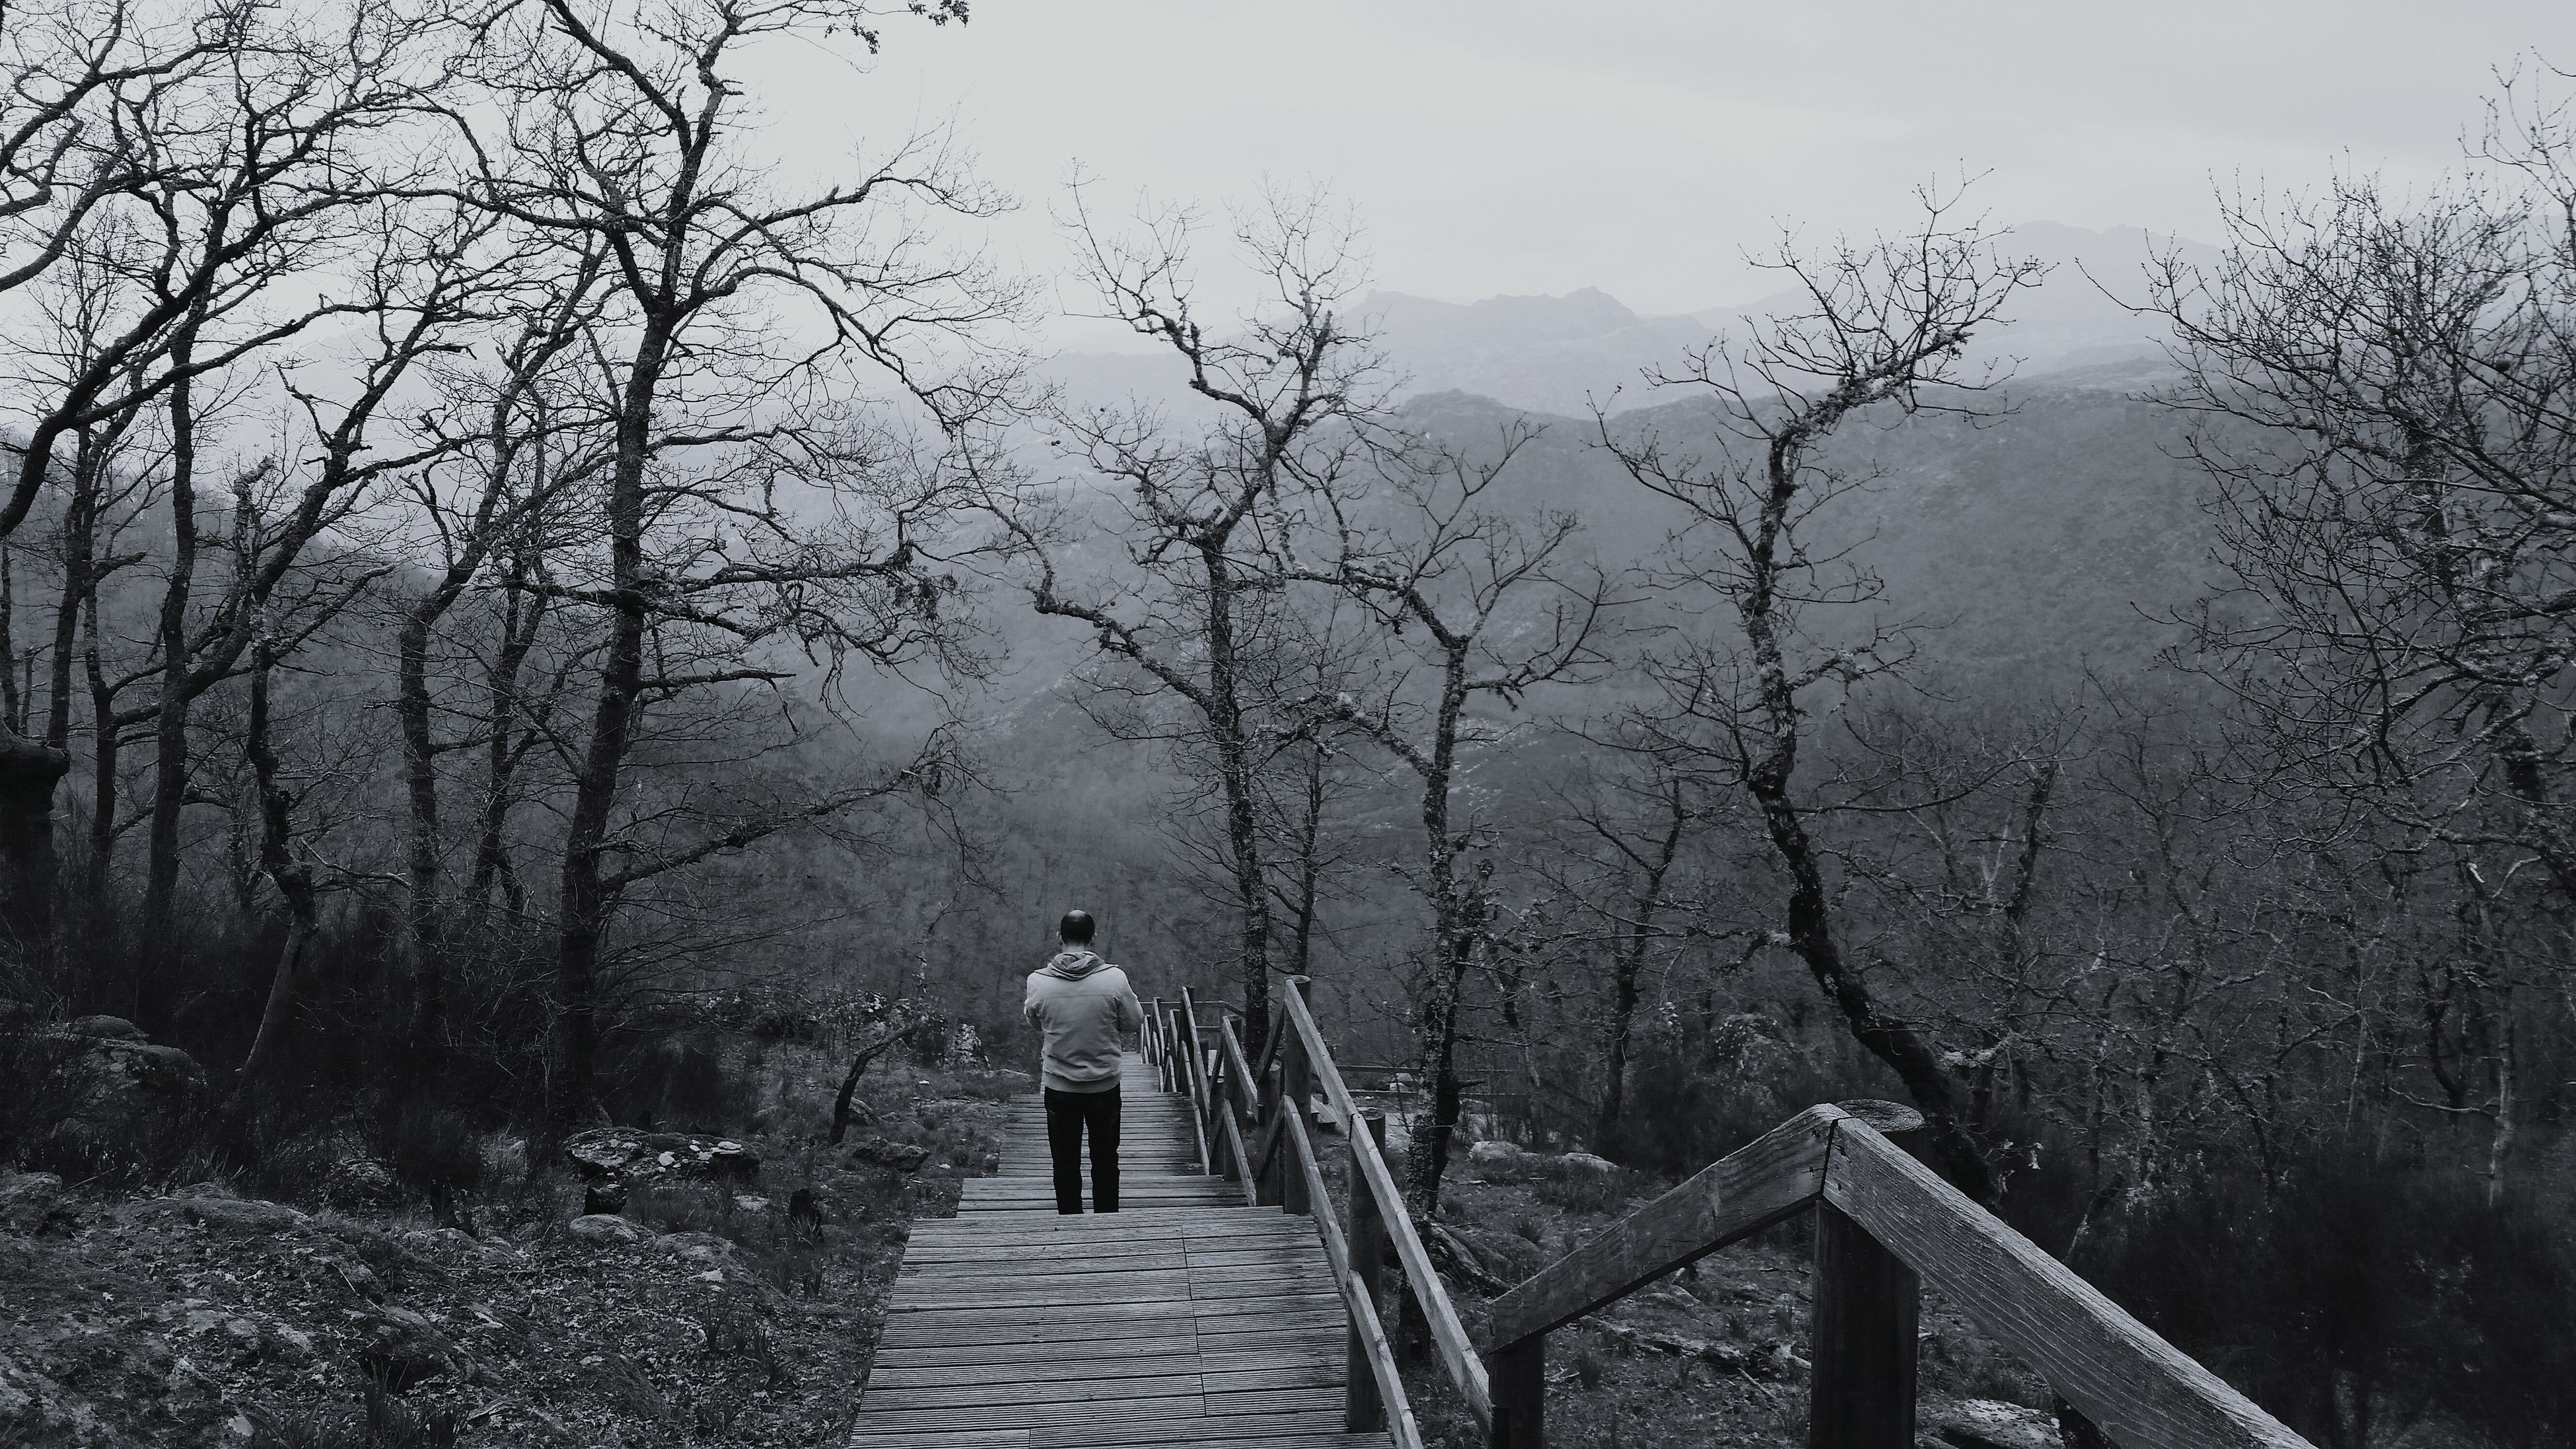 tree, bare tree, rear view, railing, walking, branch, tranquility, tranquil scene, scenics, full length, beauty in nature, walkway, nature, day, footpath, mountain, fog, the way forward, non-urban scene, outdoors, foggy, mountain range, solitude